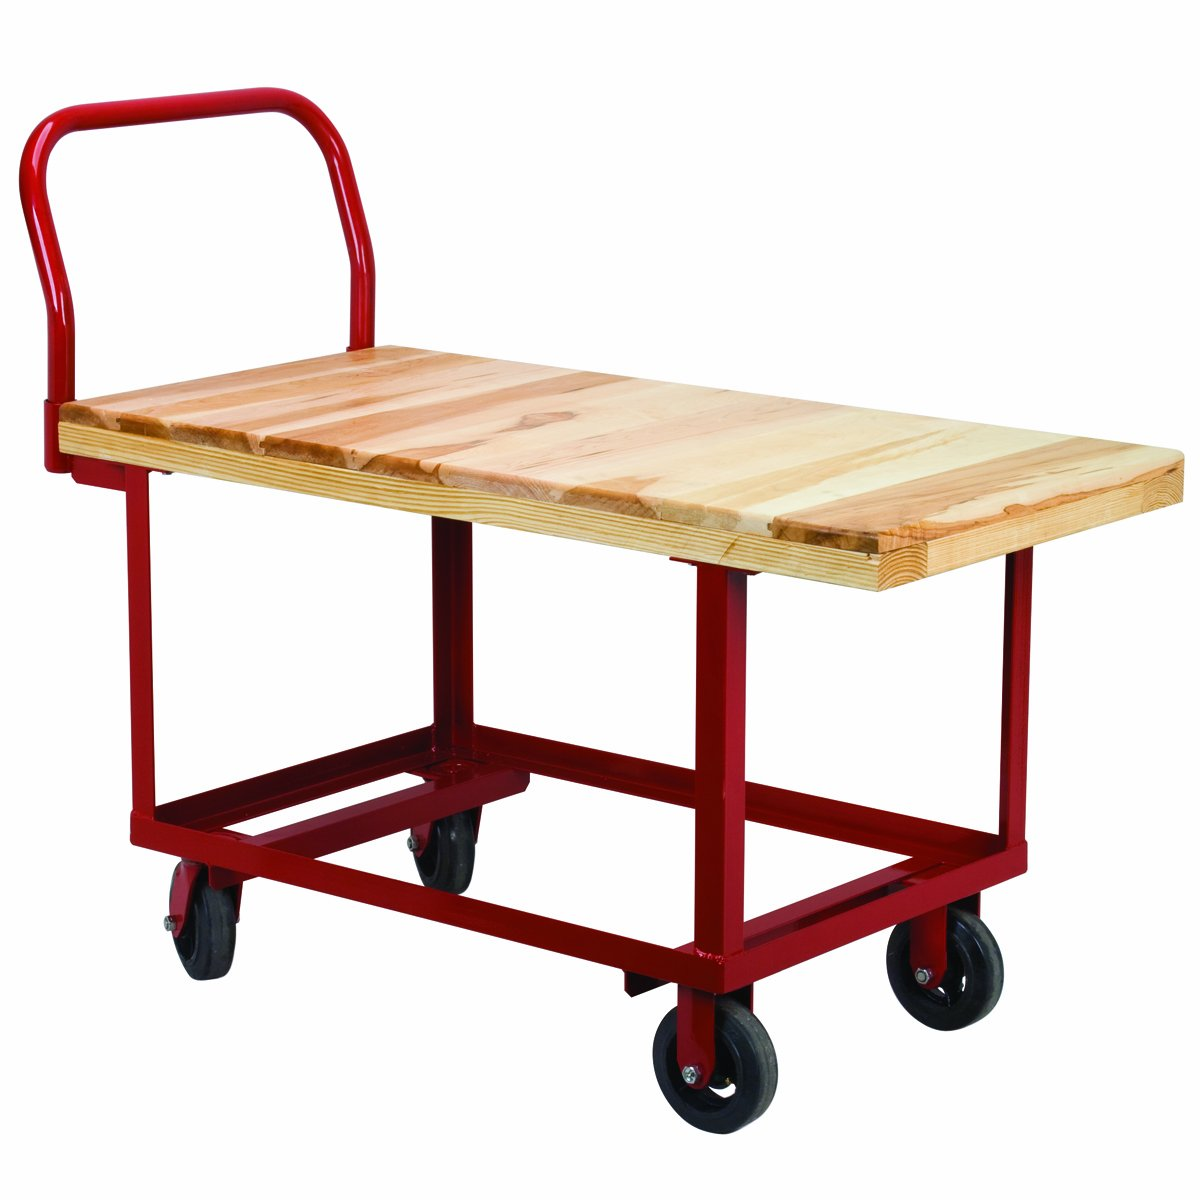 Akro-Mils RWH2448EA5M6 Wood Deck Fixed Work Height Platform Truck with 1500-Pound Capacity, 24-Inch by 48-Inch